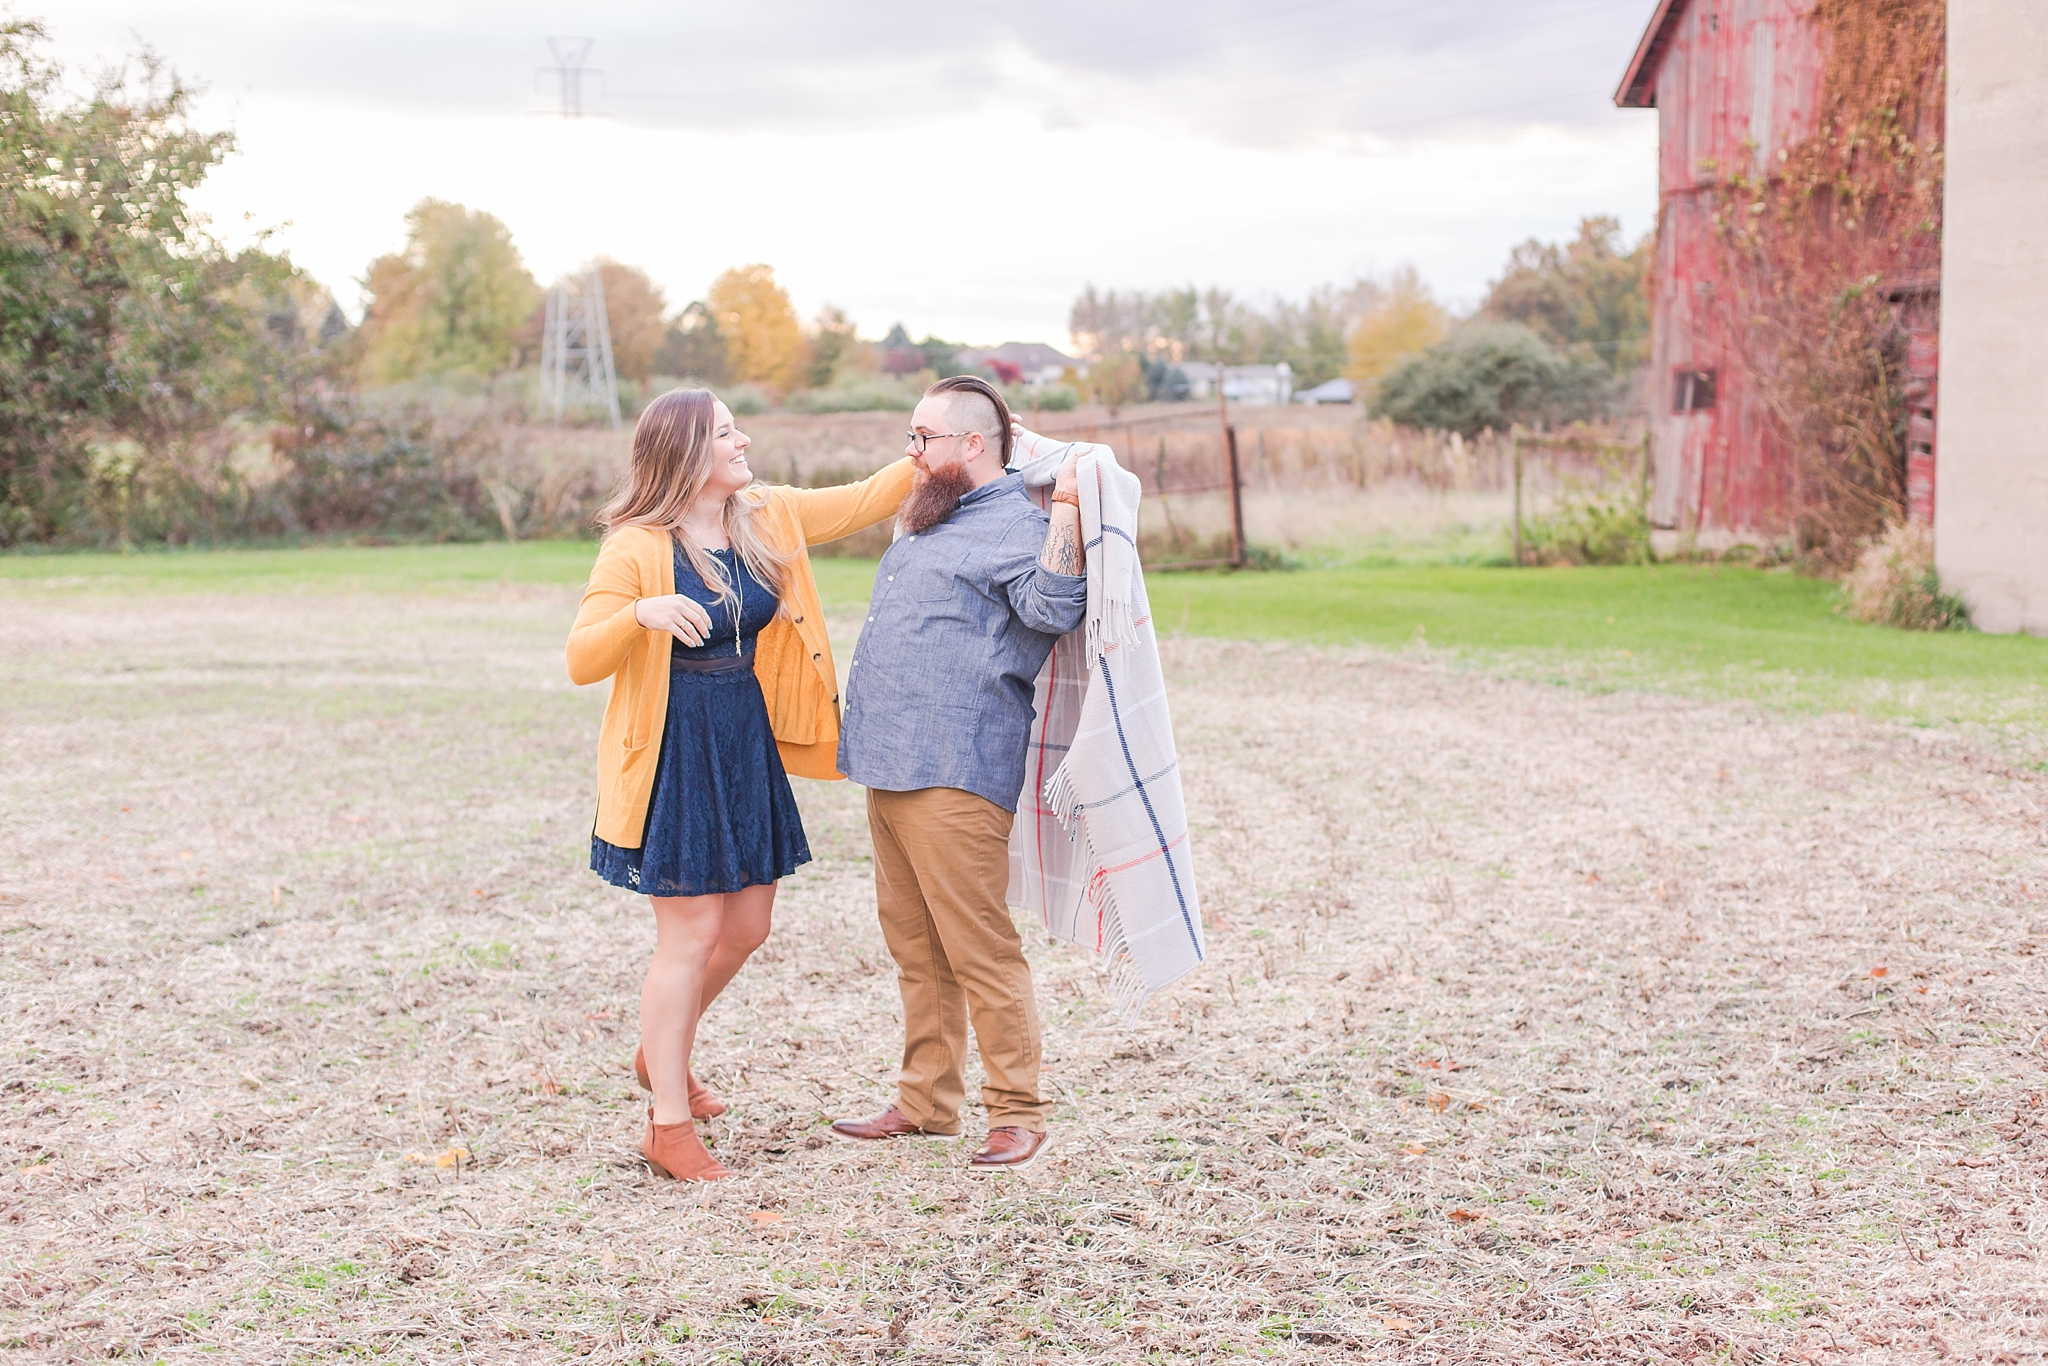 cozy-fall-engagement-photos-at-an-old-family-farm-in-monroe-michigan-by-courtney-carolyn-photography_0003.jpg